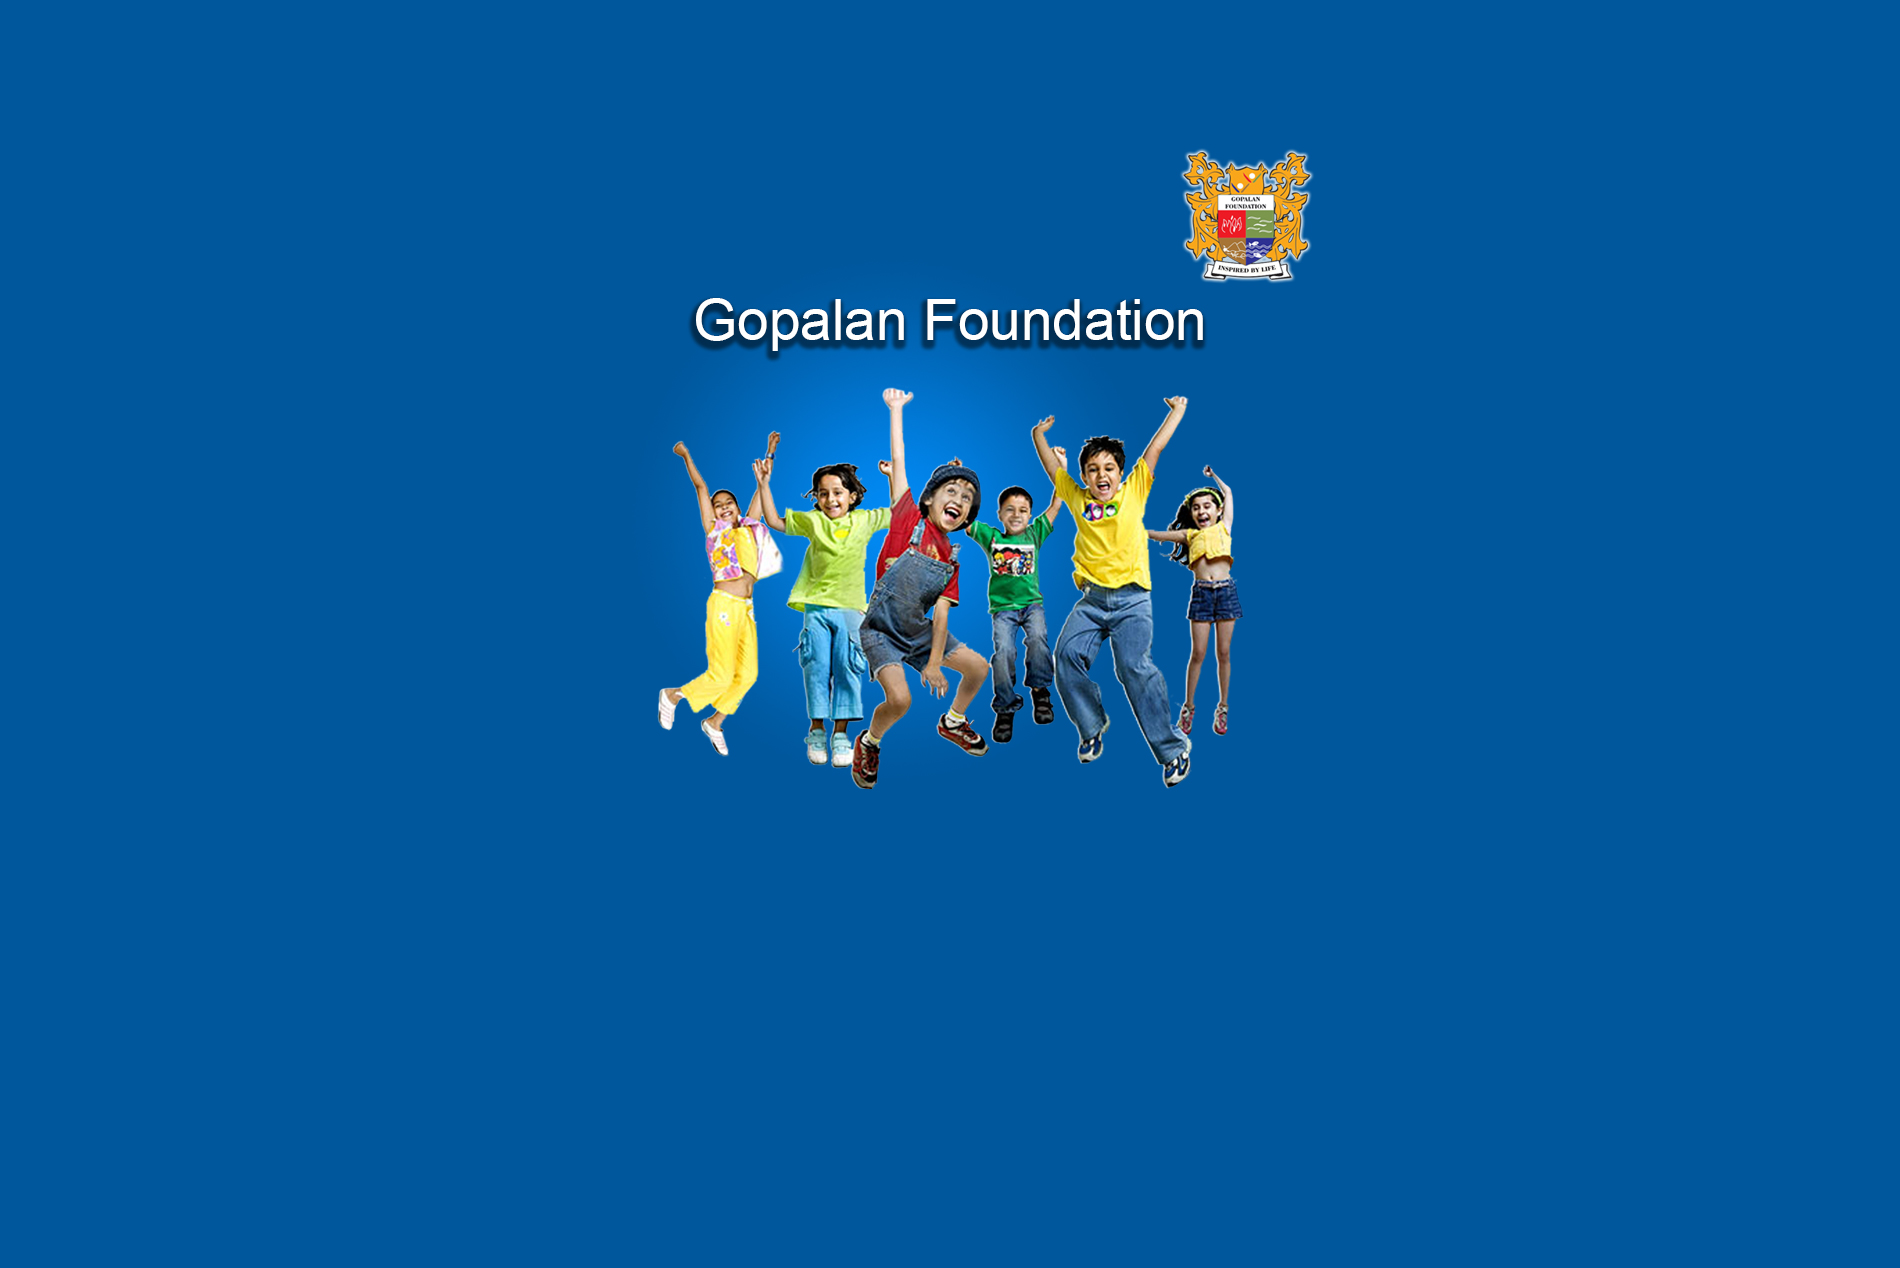 Gopalan Foundation